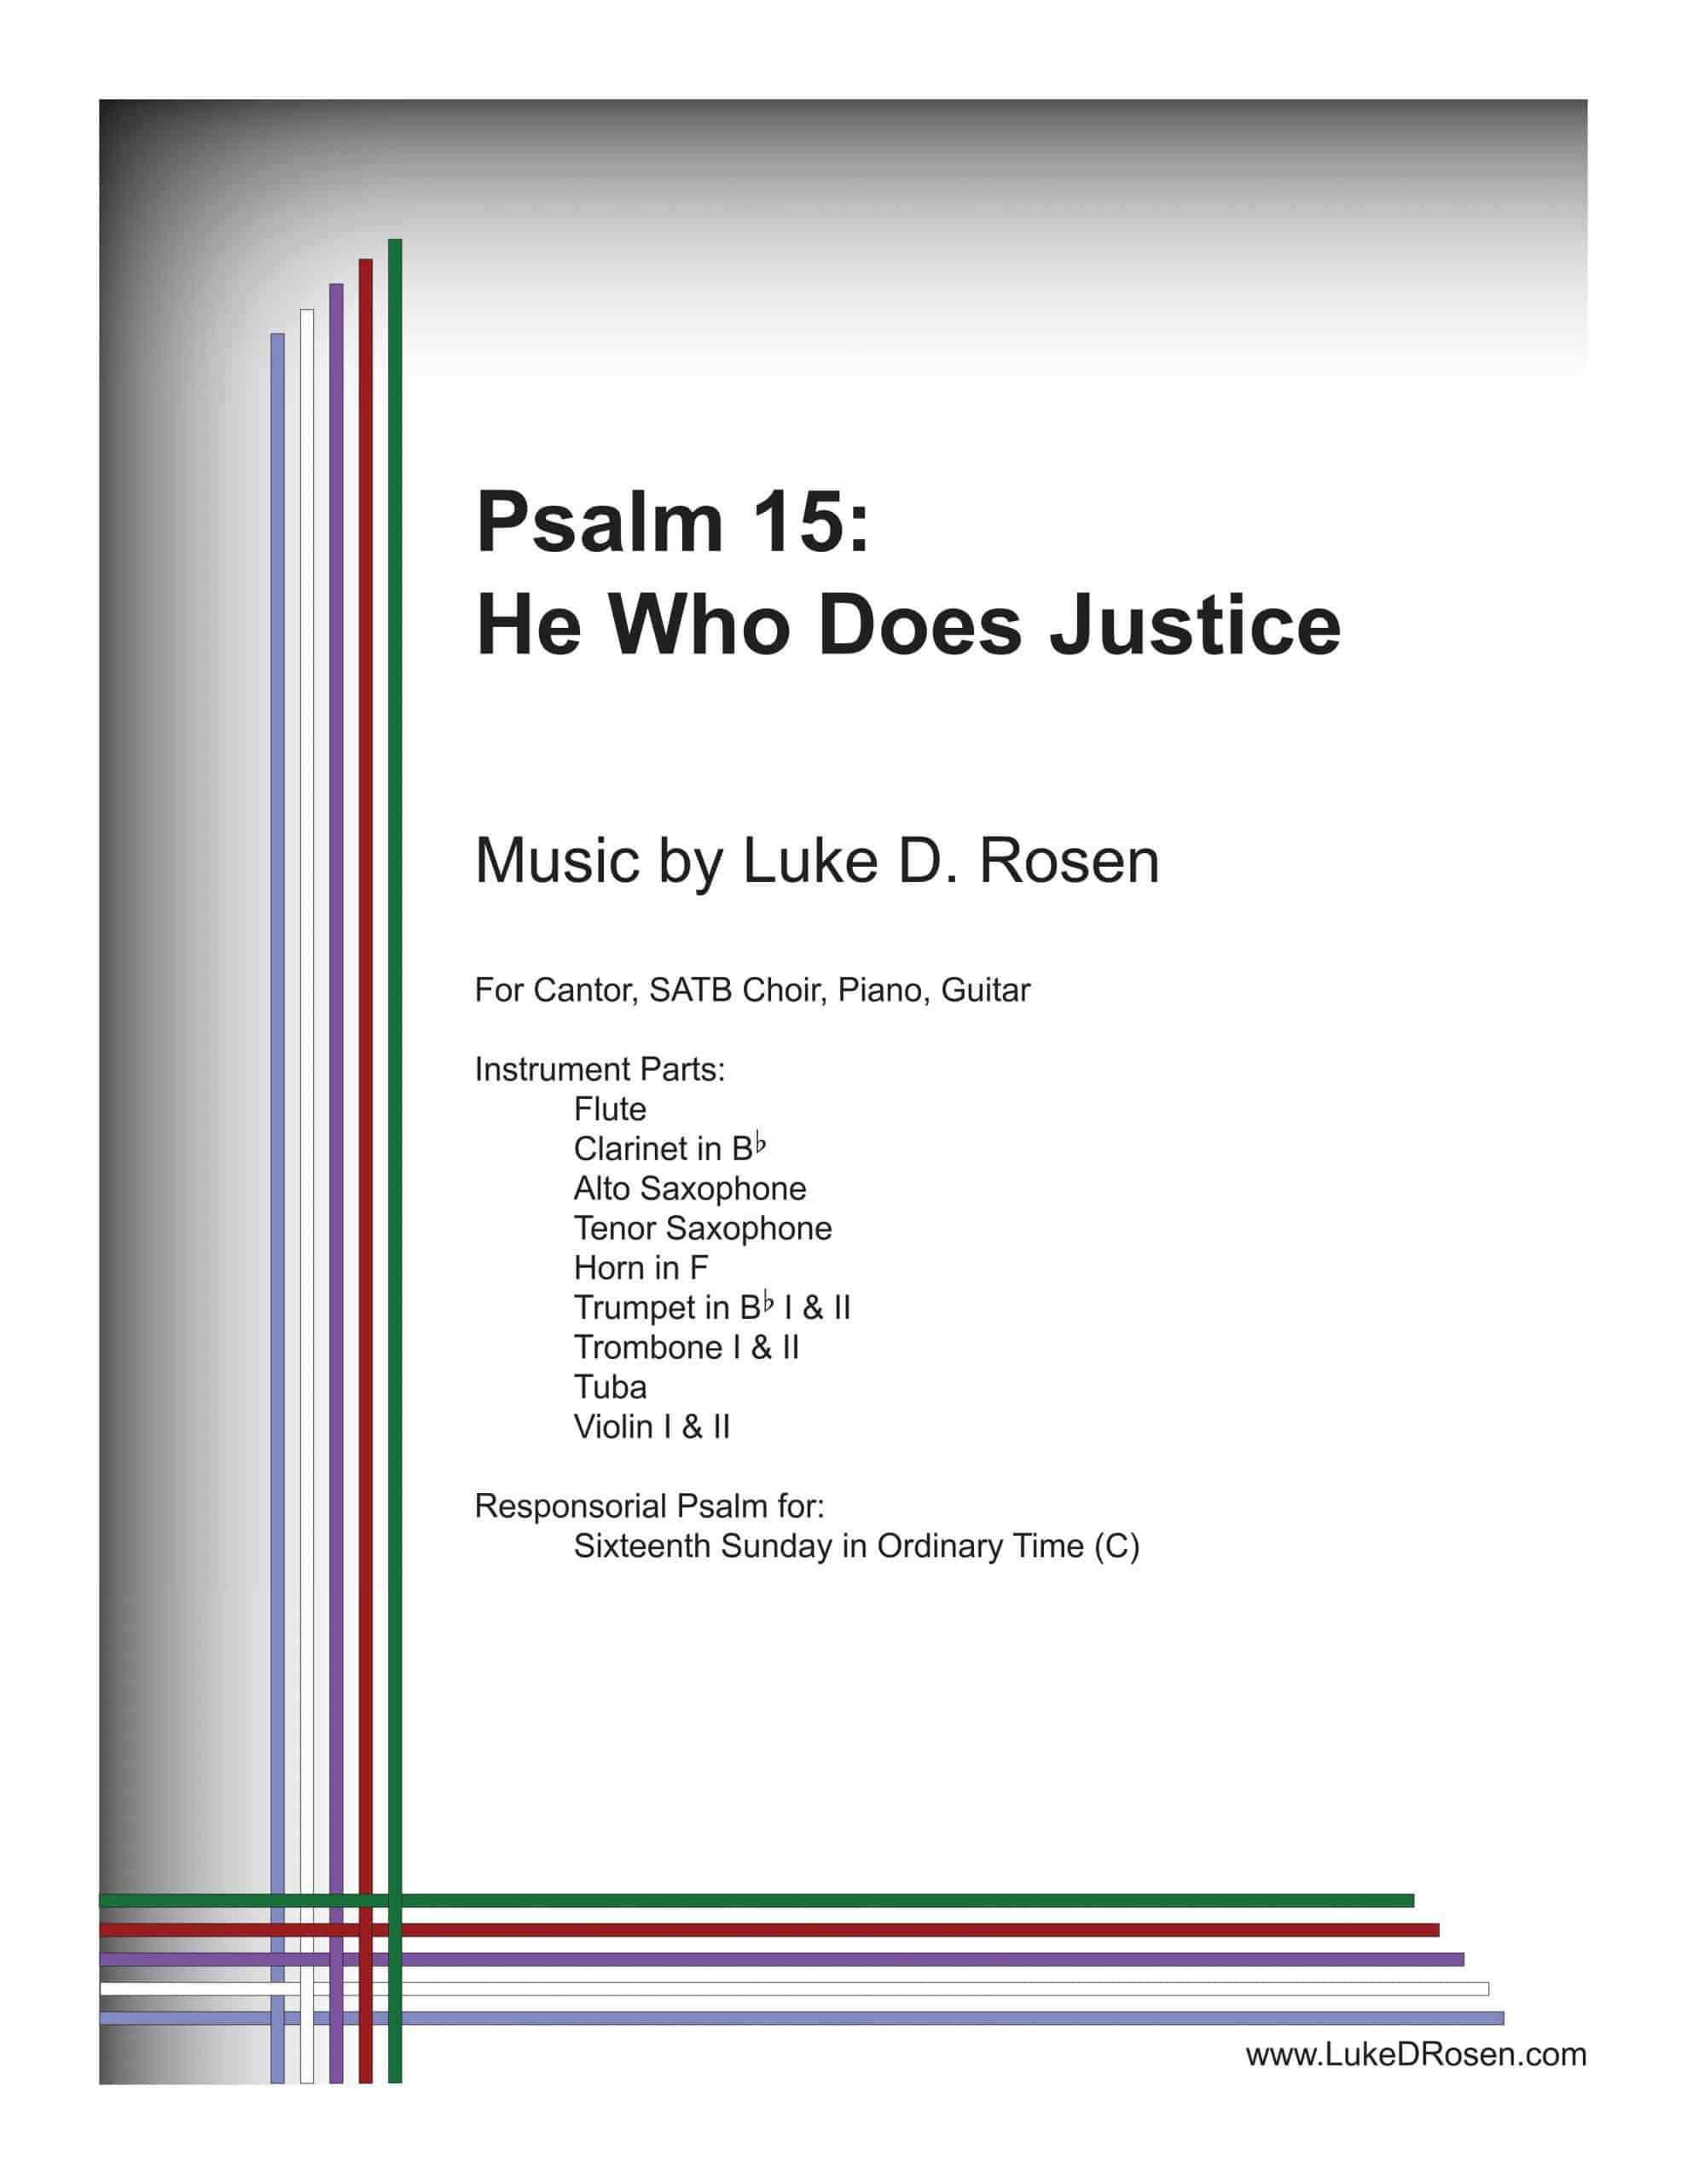 Psalm 15 He Who Does Justice ROSEN scaled